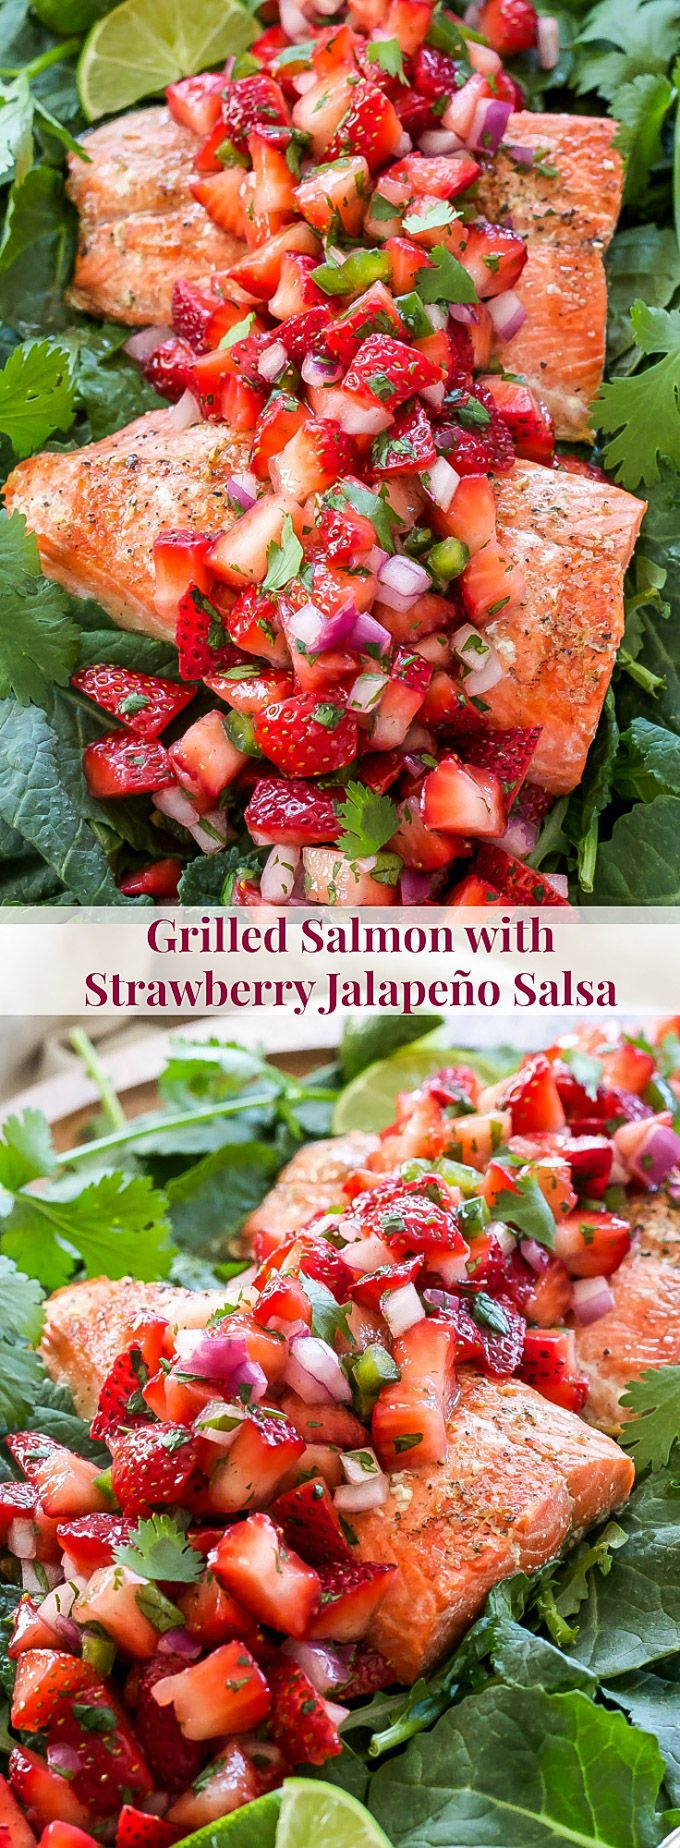 Grilled Salmon with Strawberry Jalapeno Salsa   Hearty grilled salmon paired with a fresh and slightly spicy strawberry jalapeno salsa is perfect for an easy and healthy dinner!